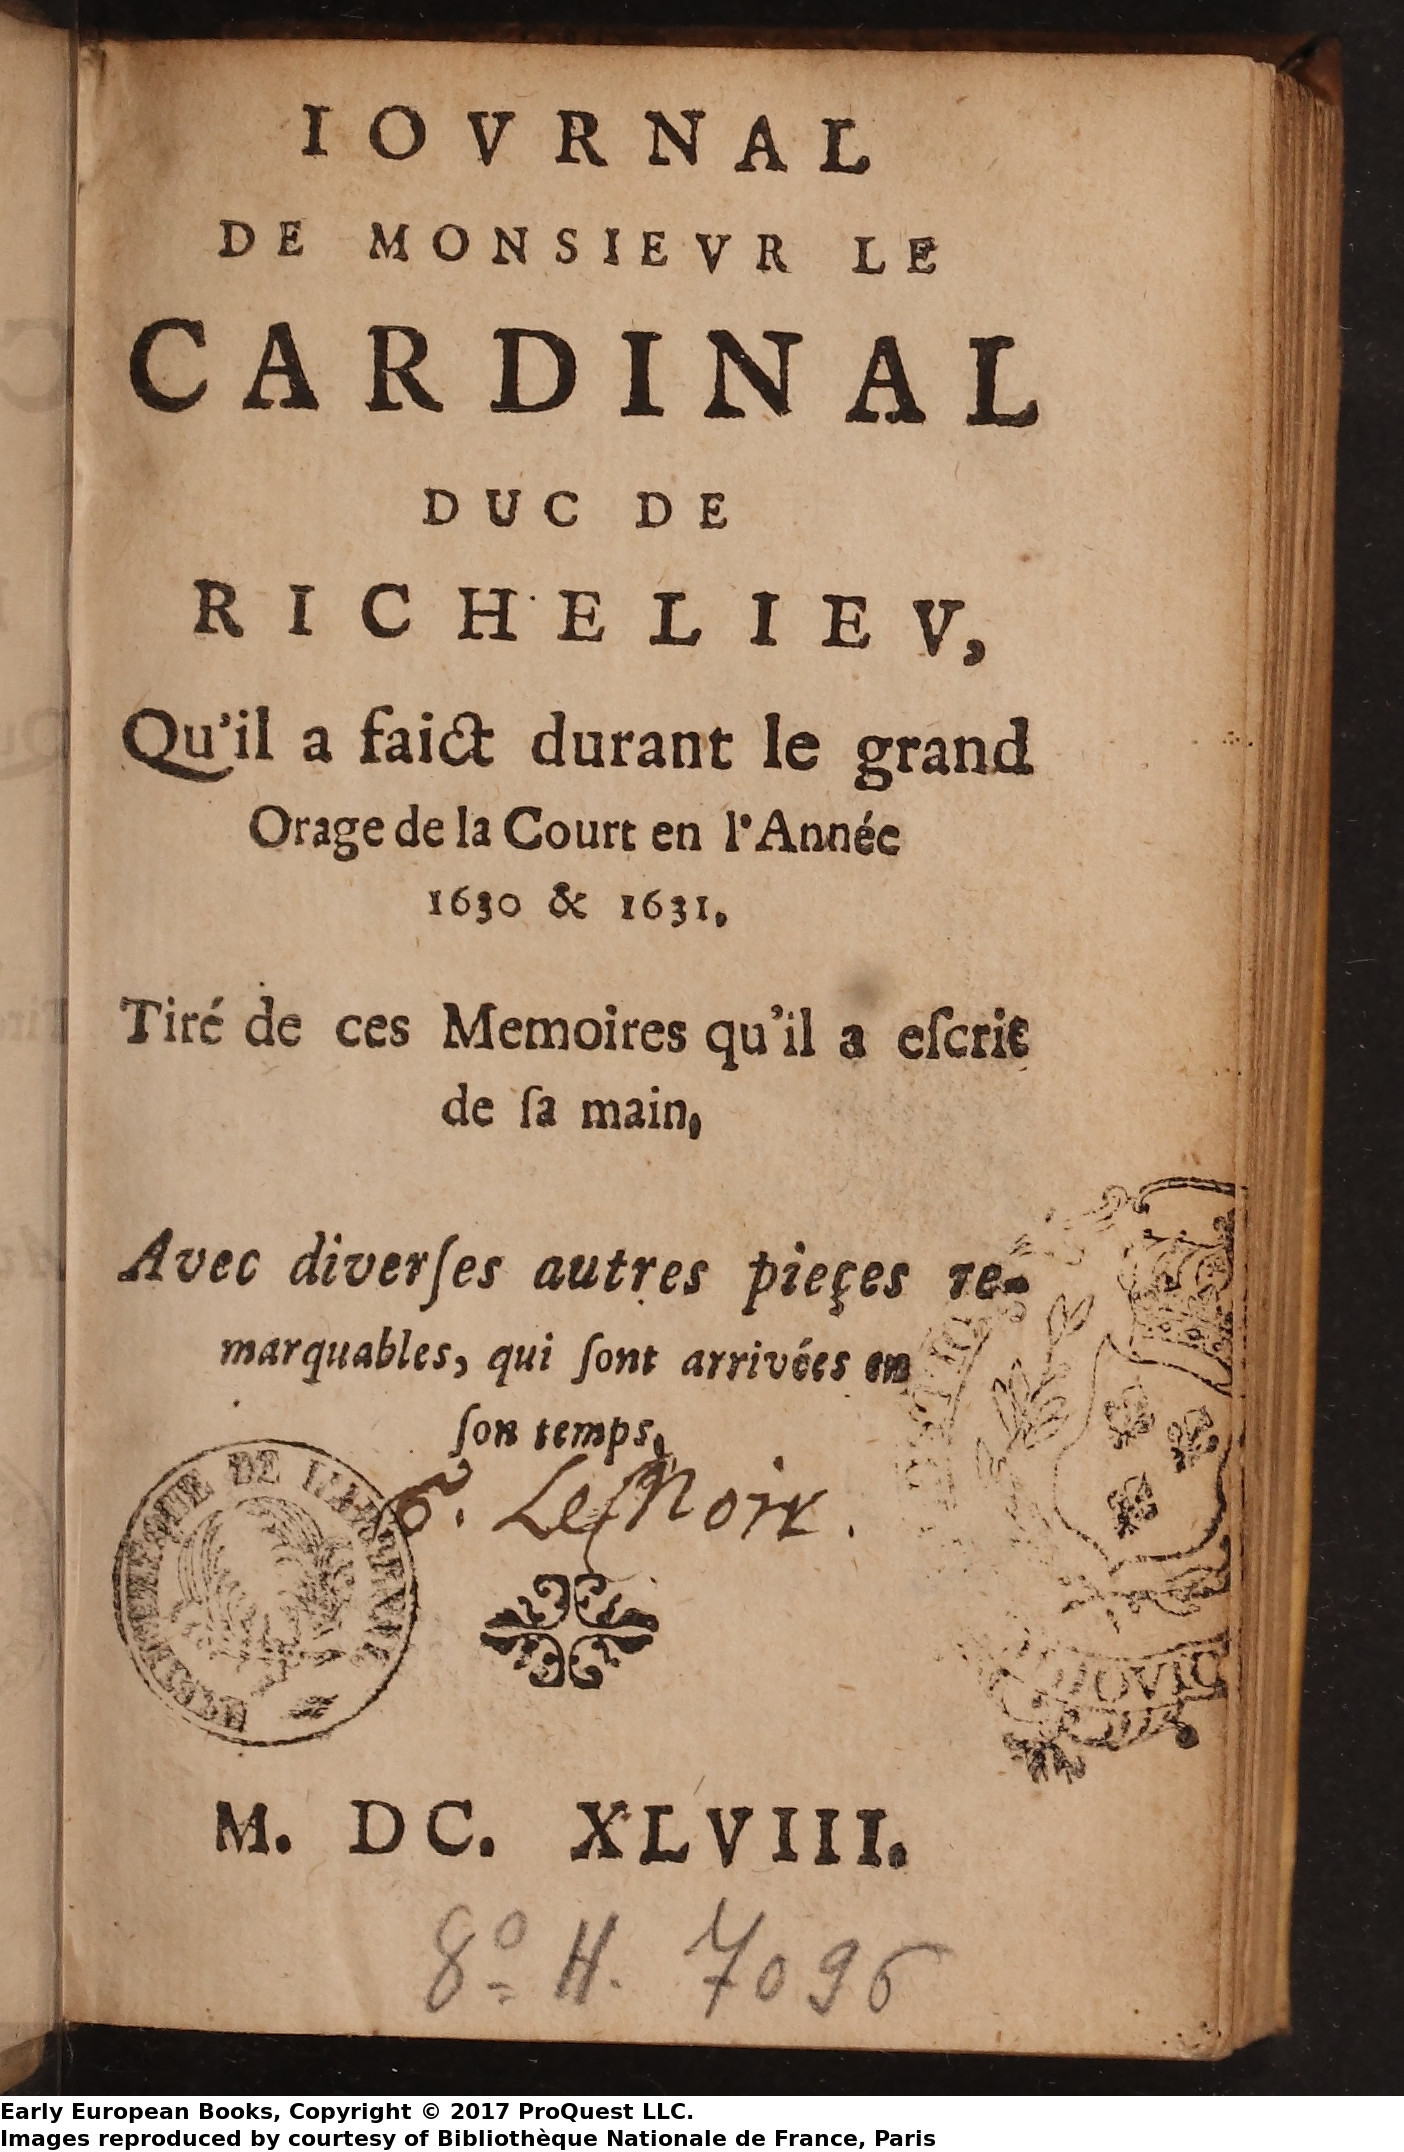 Journal de M. le Cardinal duc de Richelieu 1648